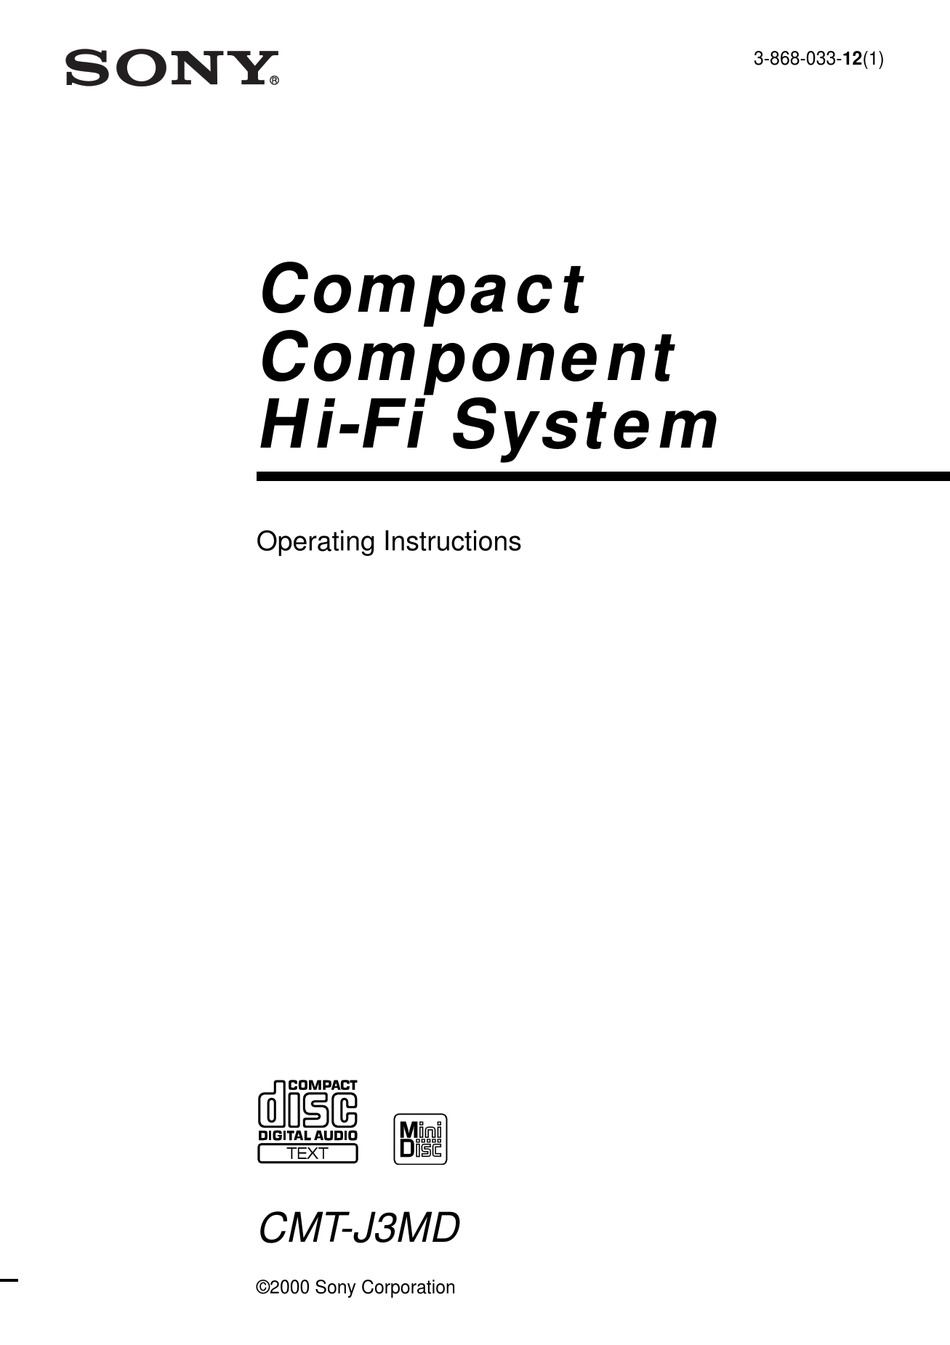 SONY CMT-J3MD OPERATING INSTRUCTIONS MANUAL Pdf Download